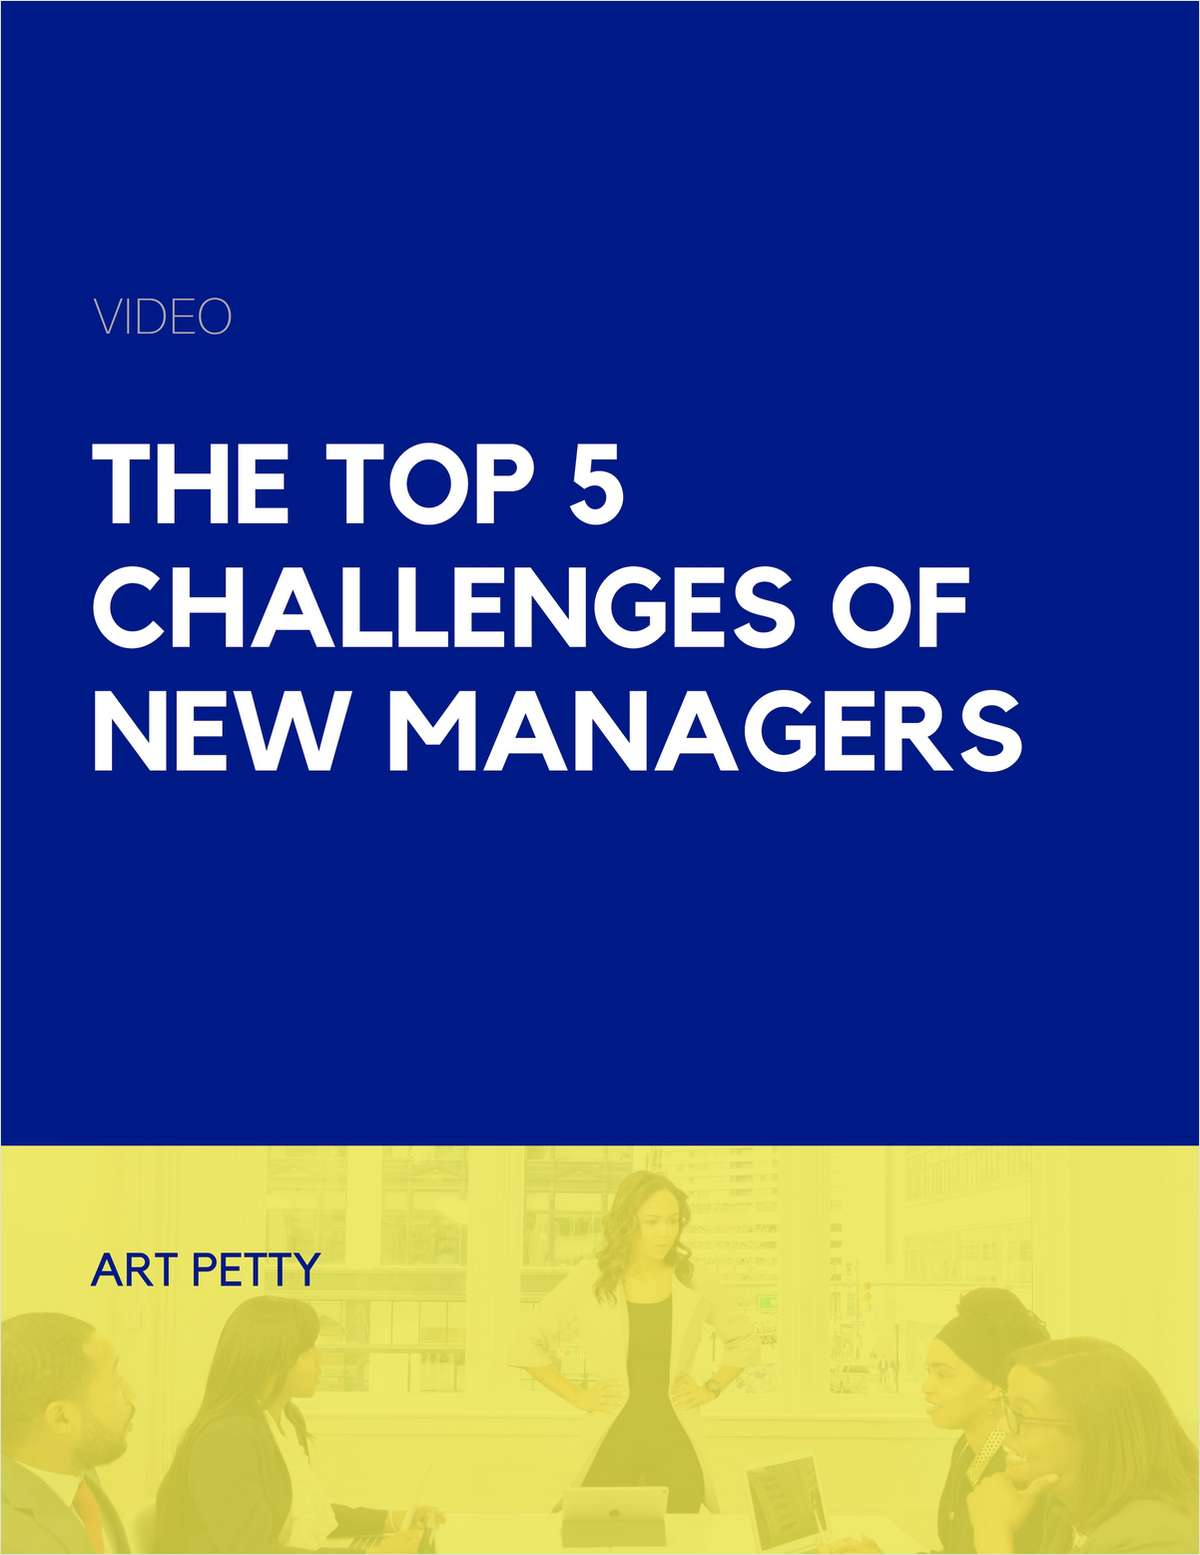 The Top 5 Challenges of New Managers